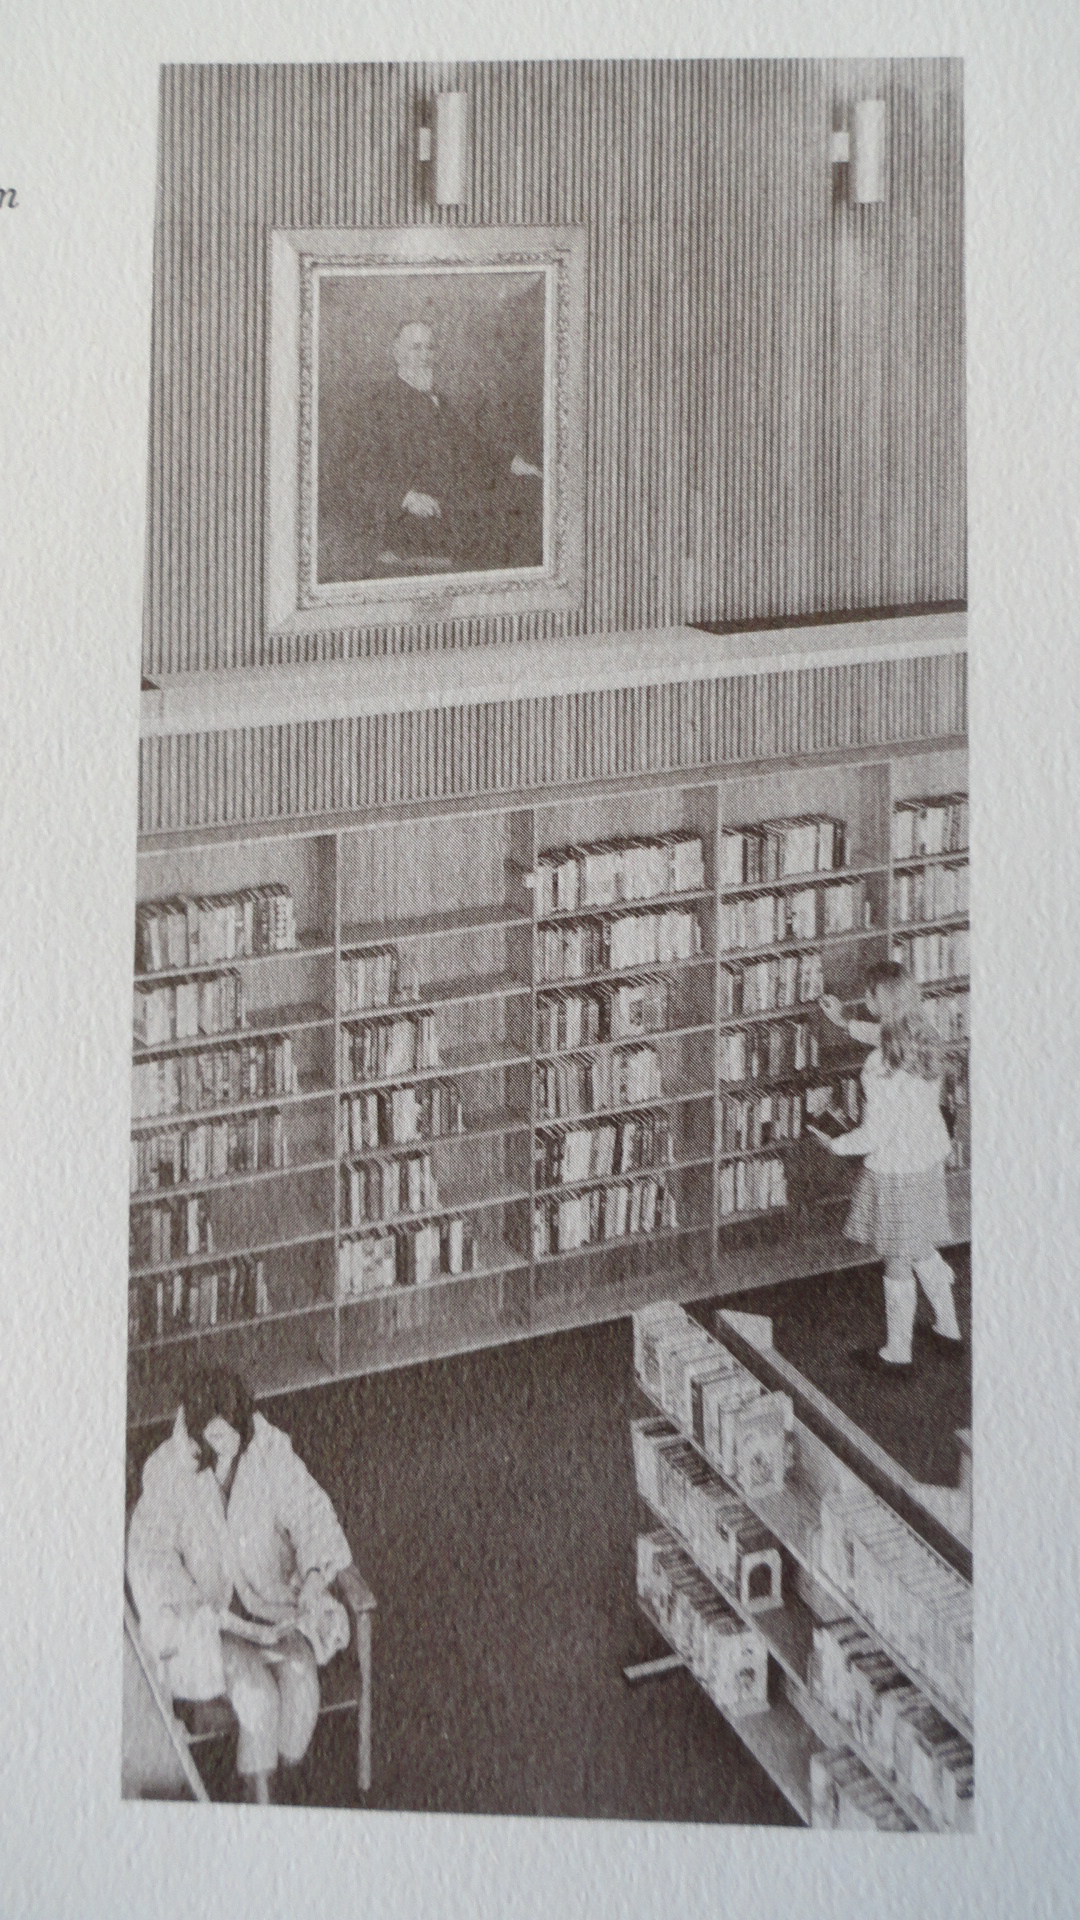 Child choosing book in library